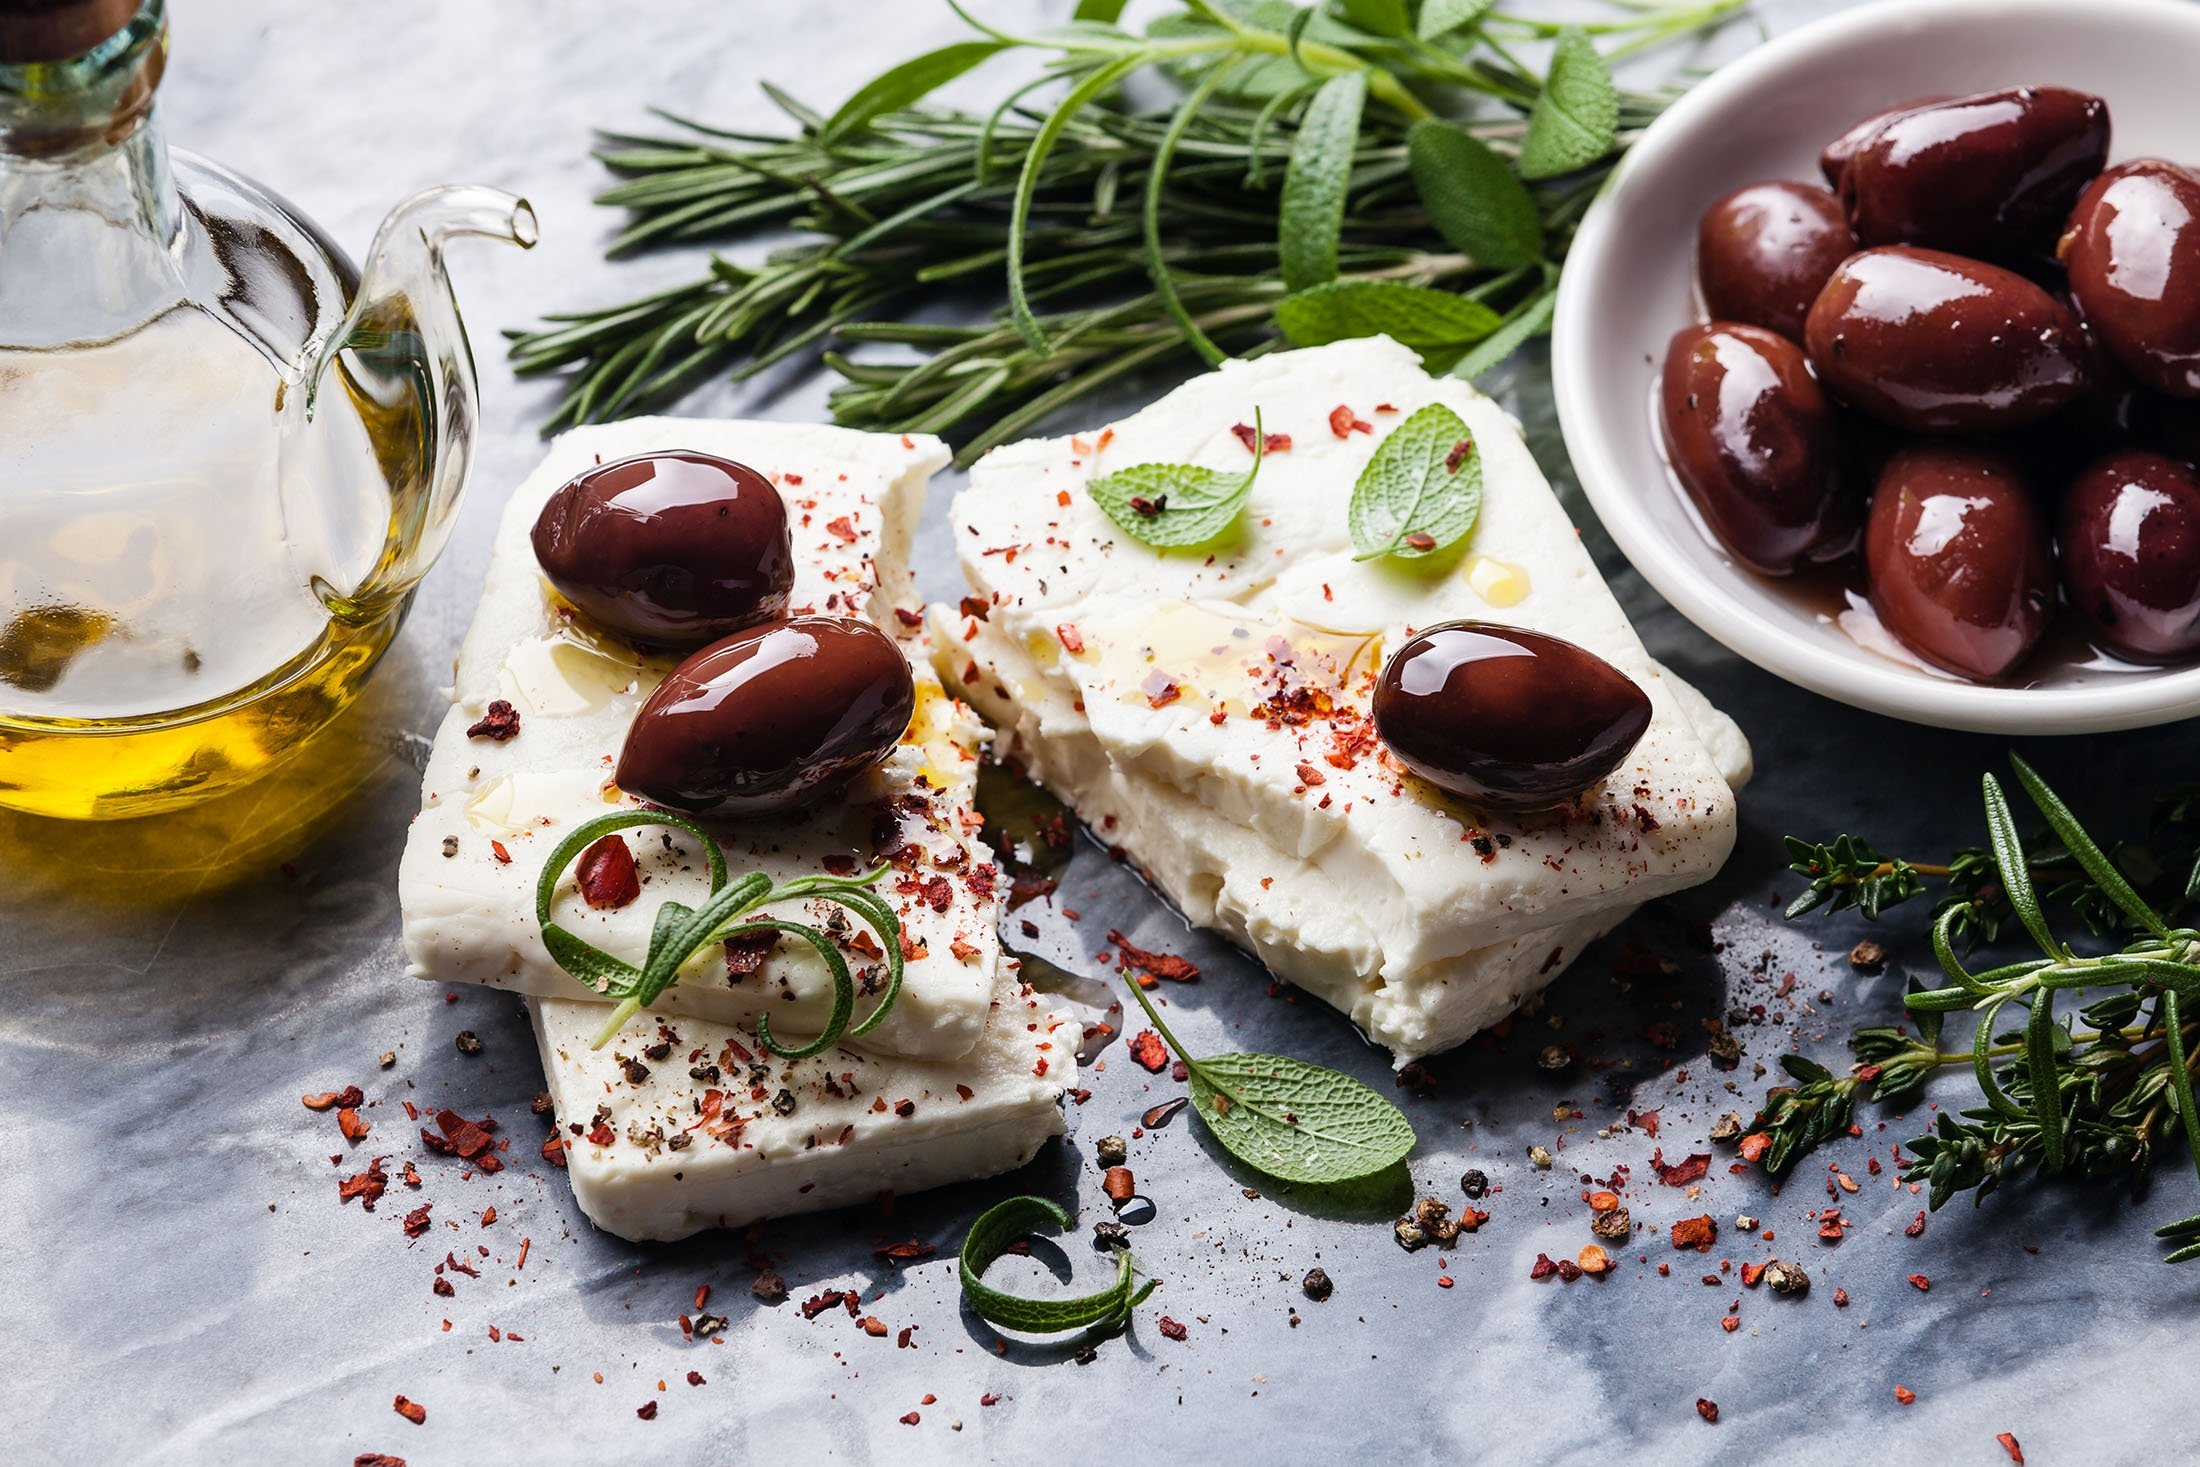 Olives are an indispensable part of breakfast, lunch and even dinner tables in Mediterranean countries. (Shutterstock Photo)